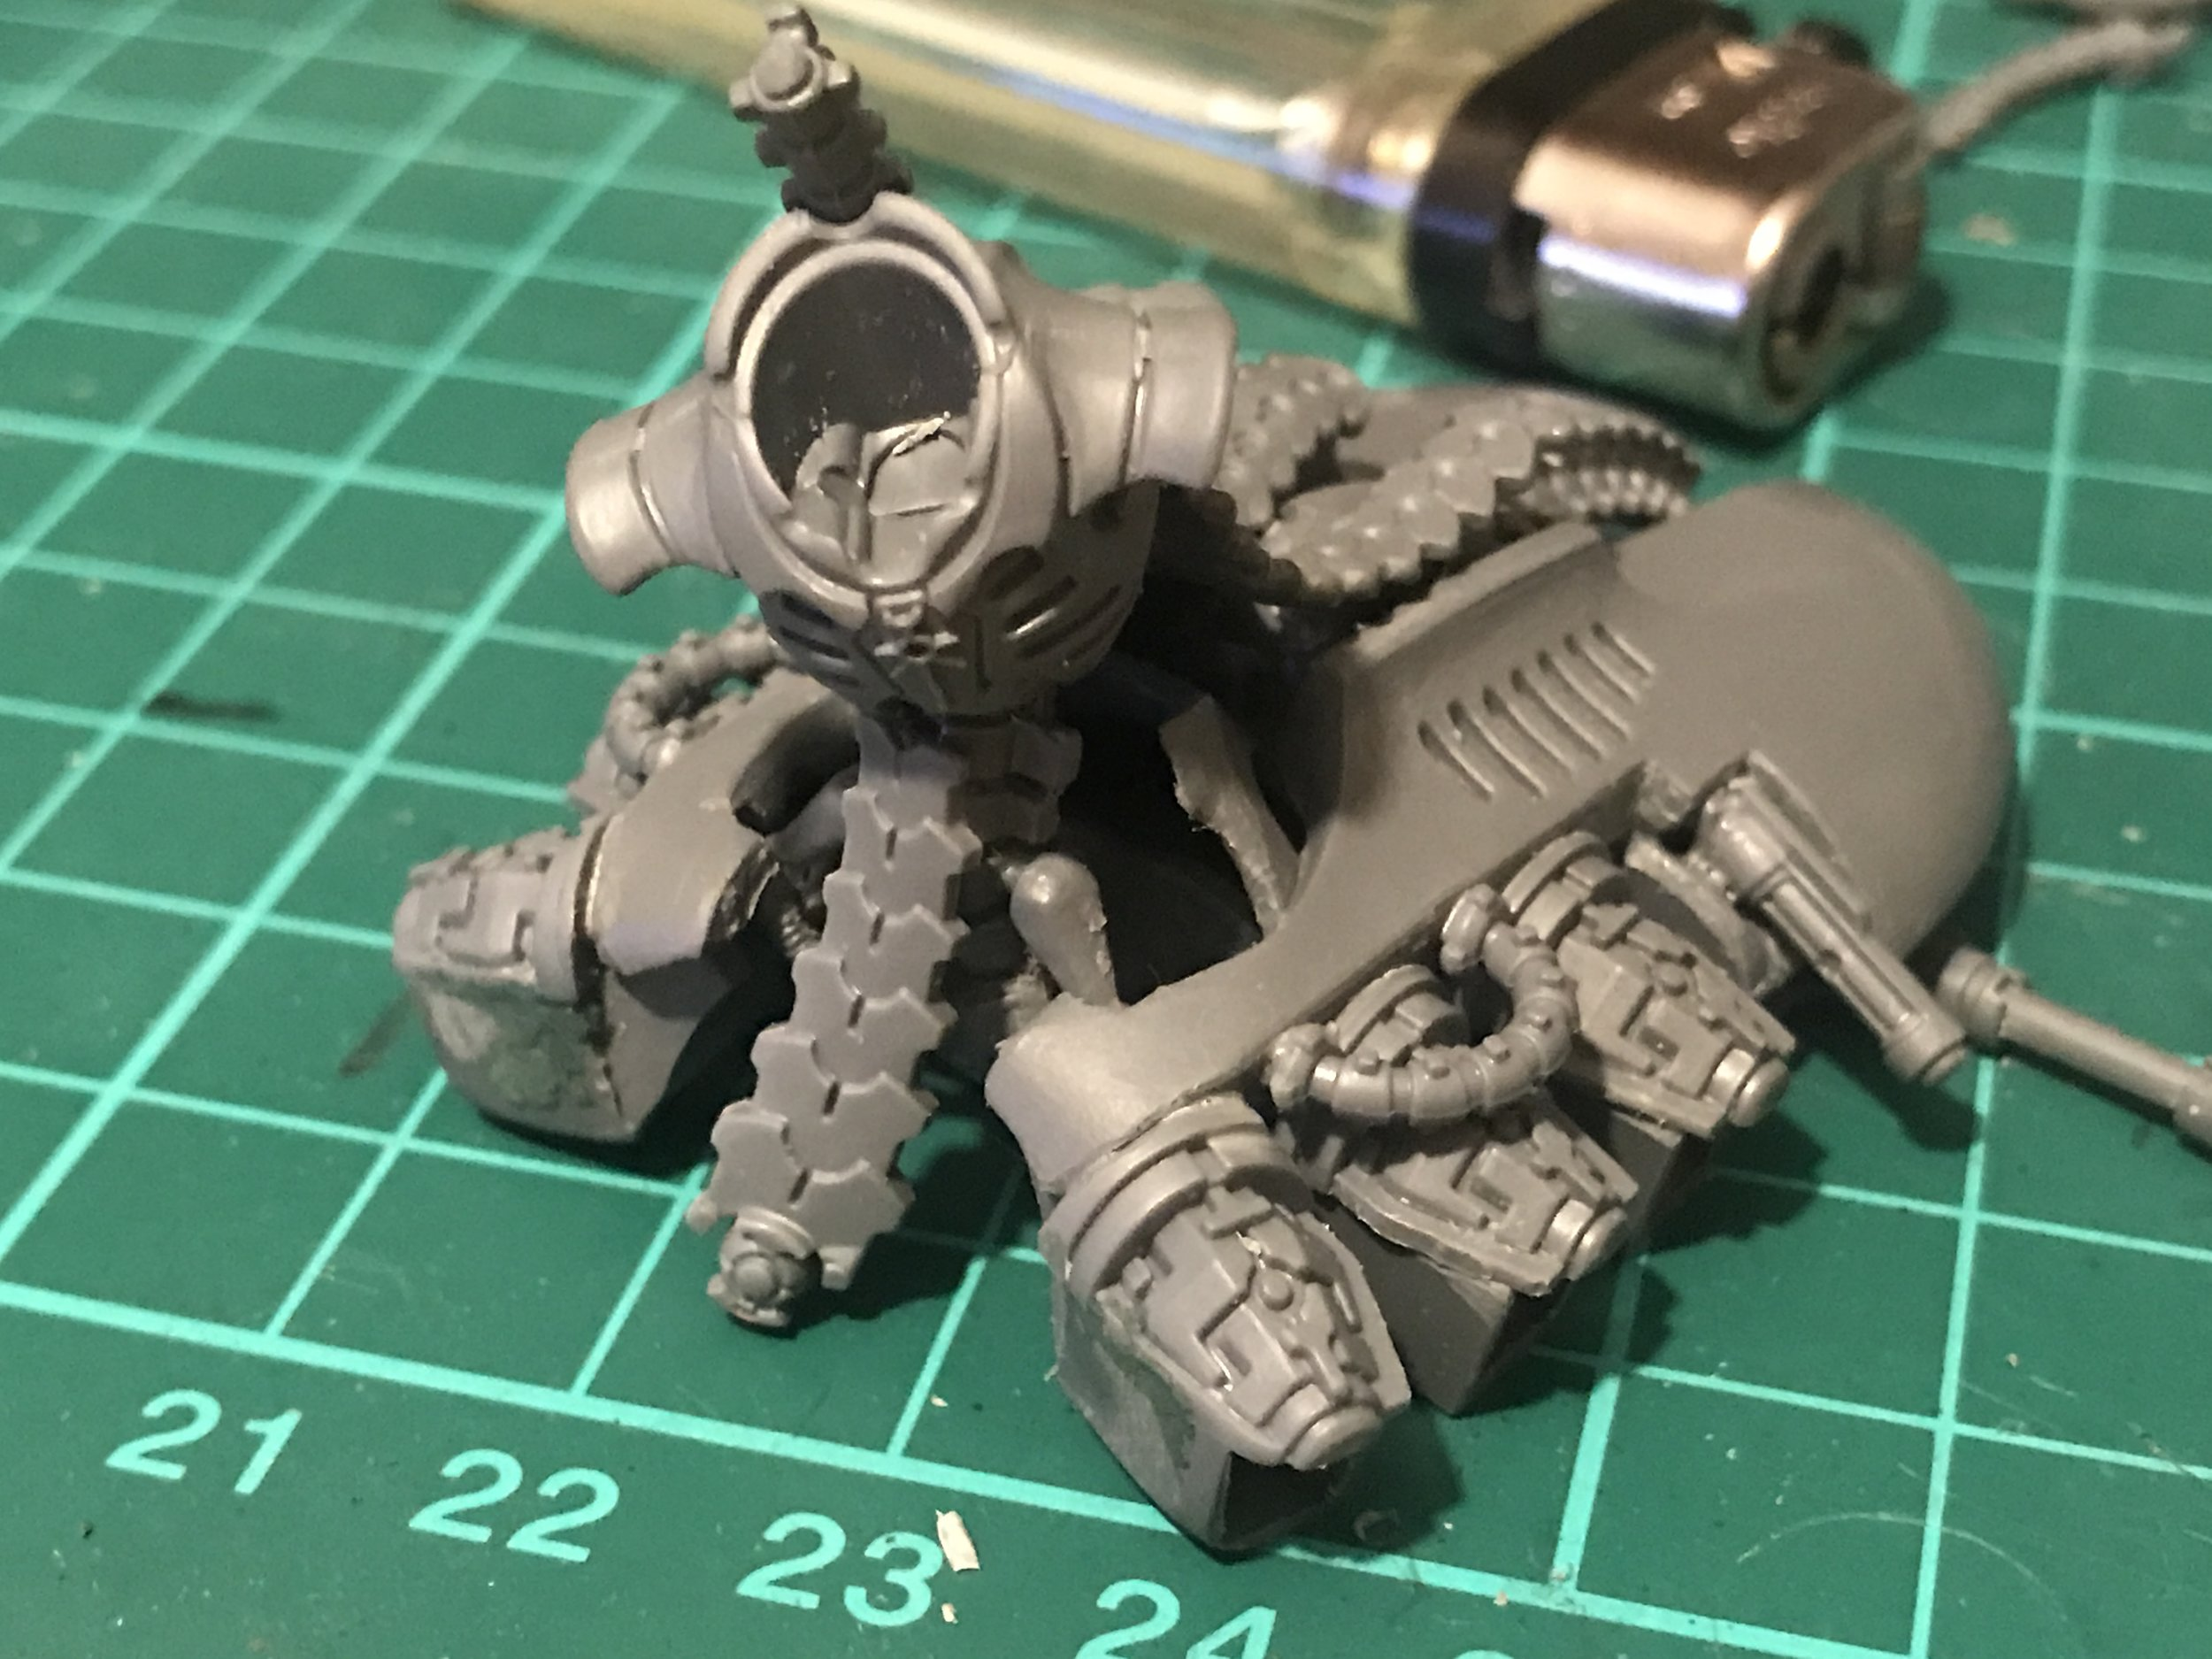 This guy needed a Warscythe!